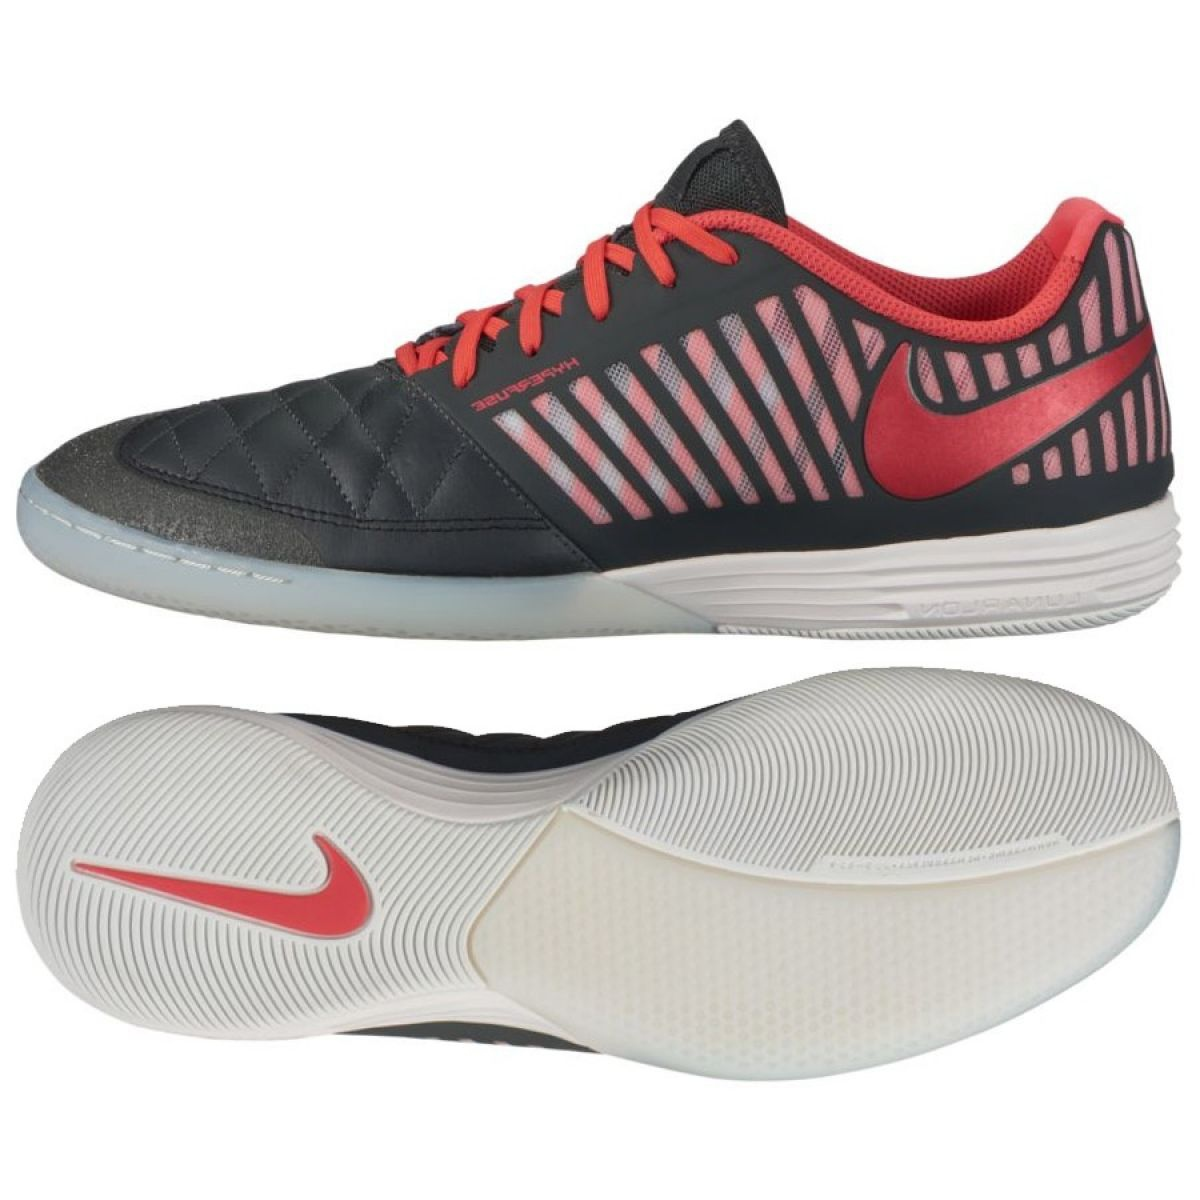 buy popular 2fd7c 02ddd Indoor shoes Nike Lunargato Ii Ic M 580456-080